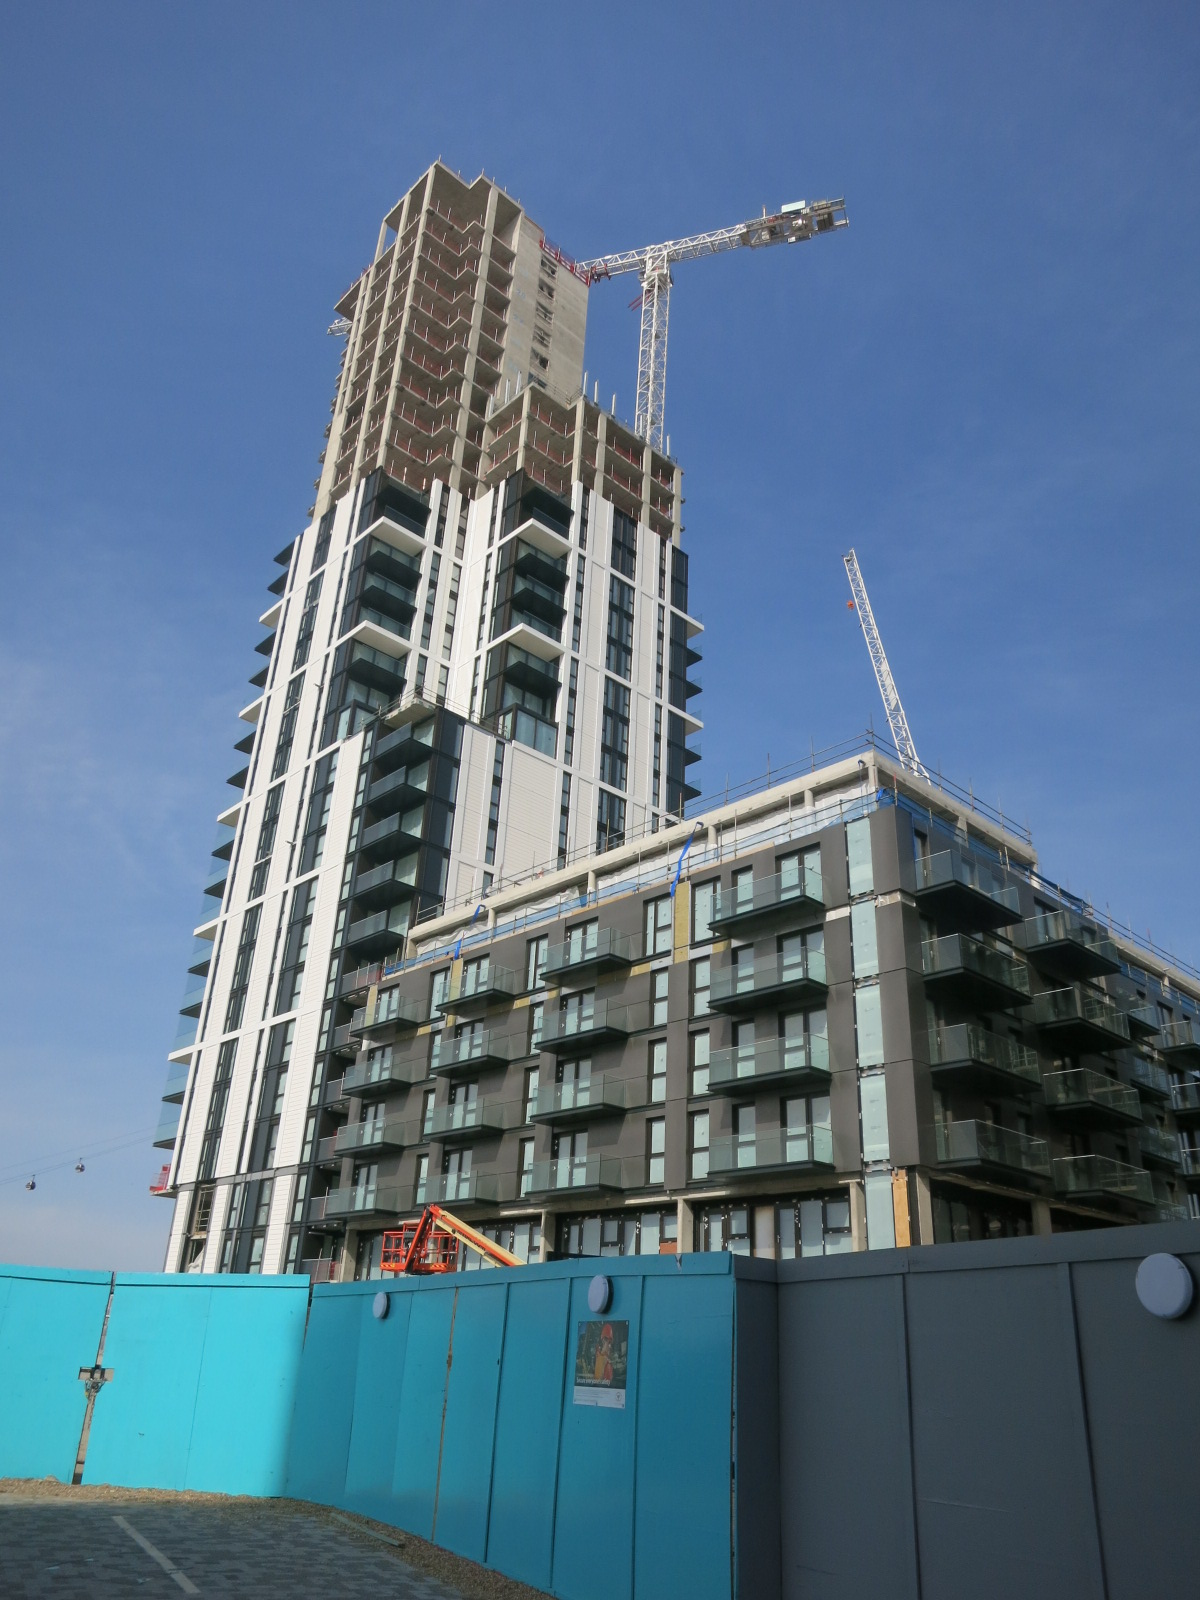 Most recent construction progress on The Waterman tower - April 2016 [ @greenpenlondon ]